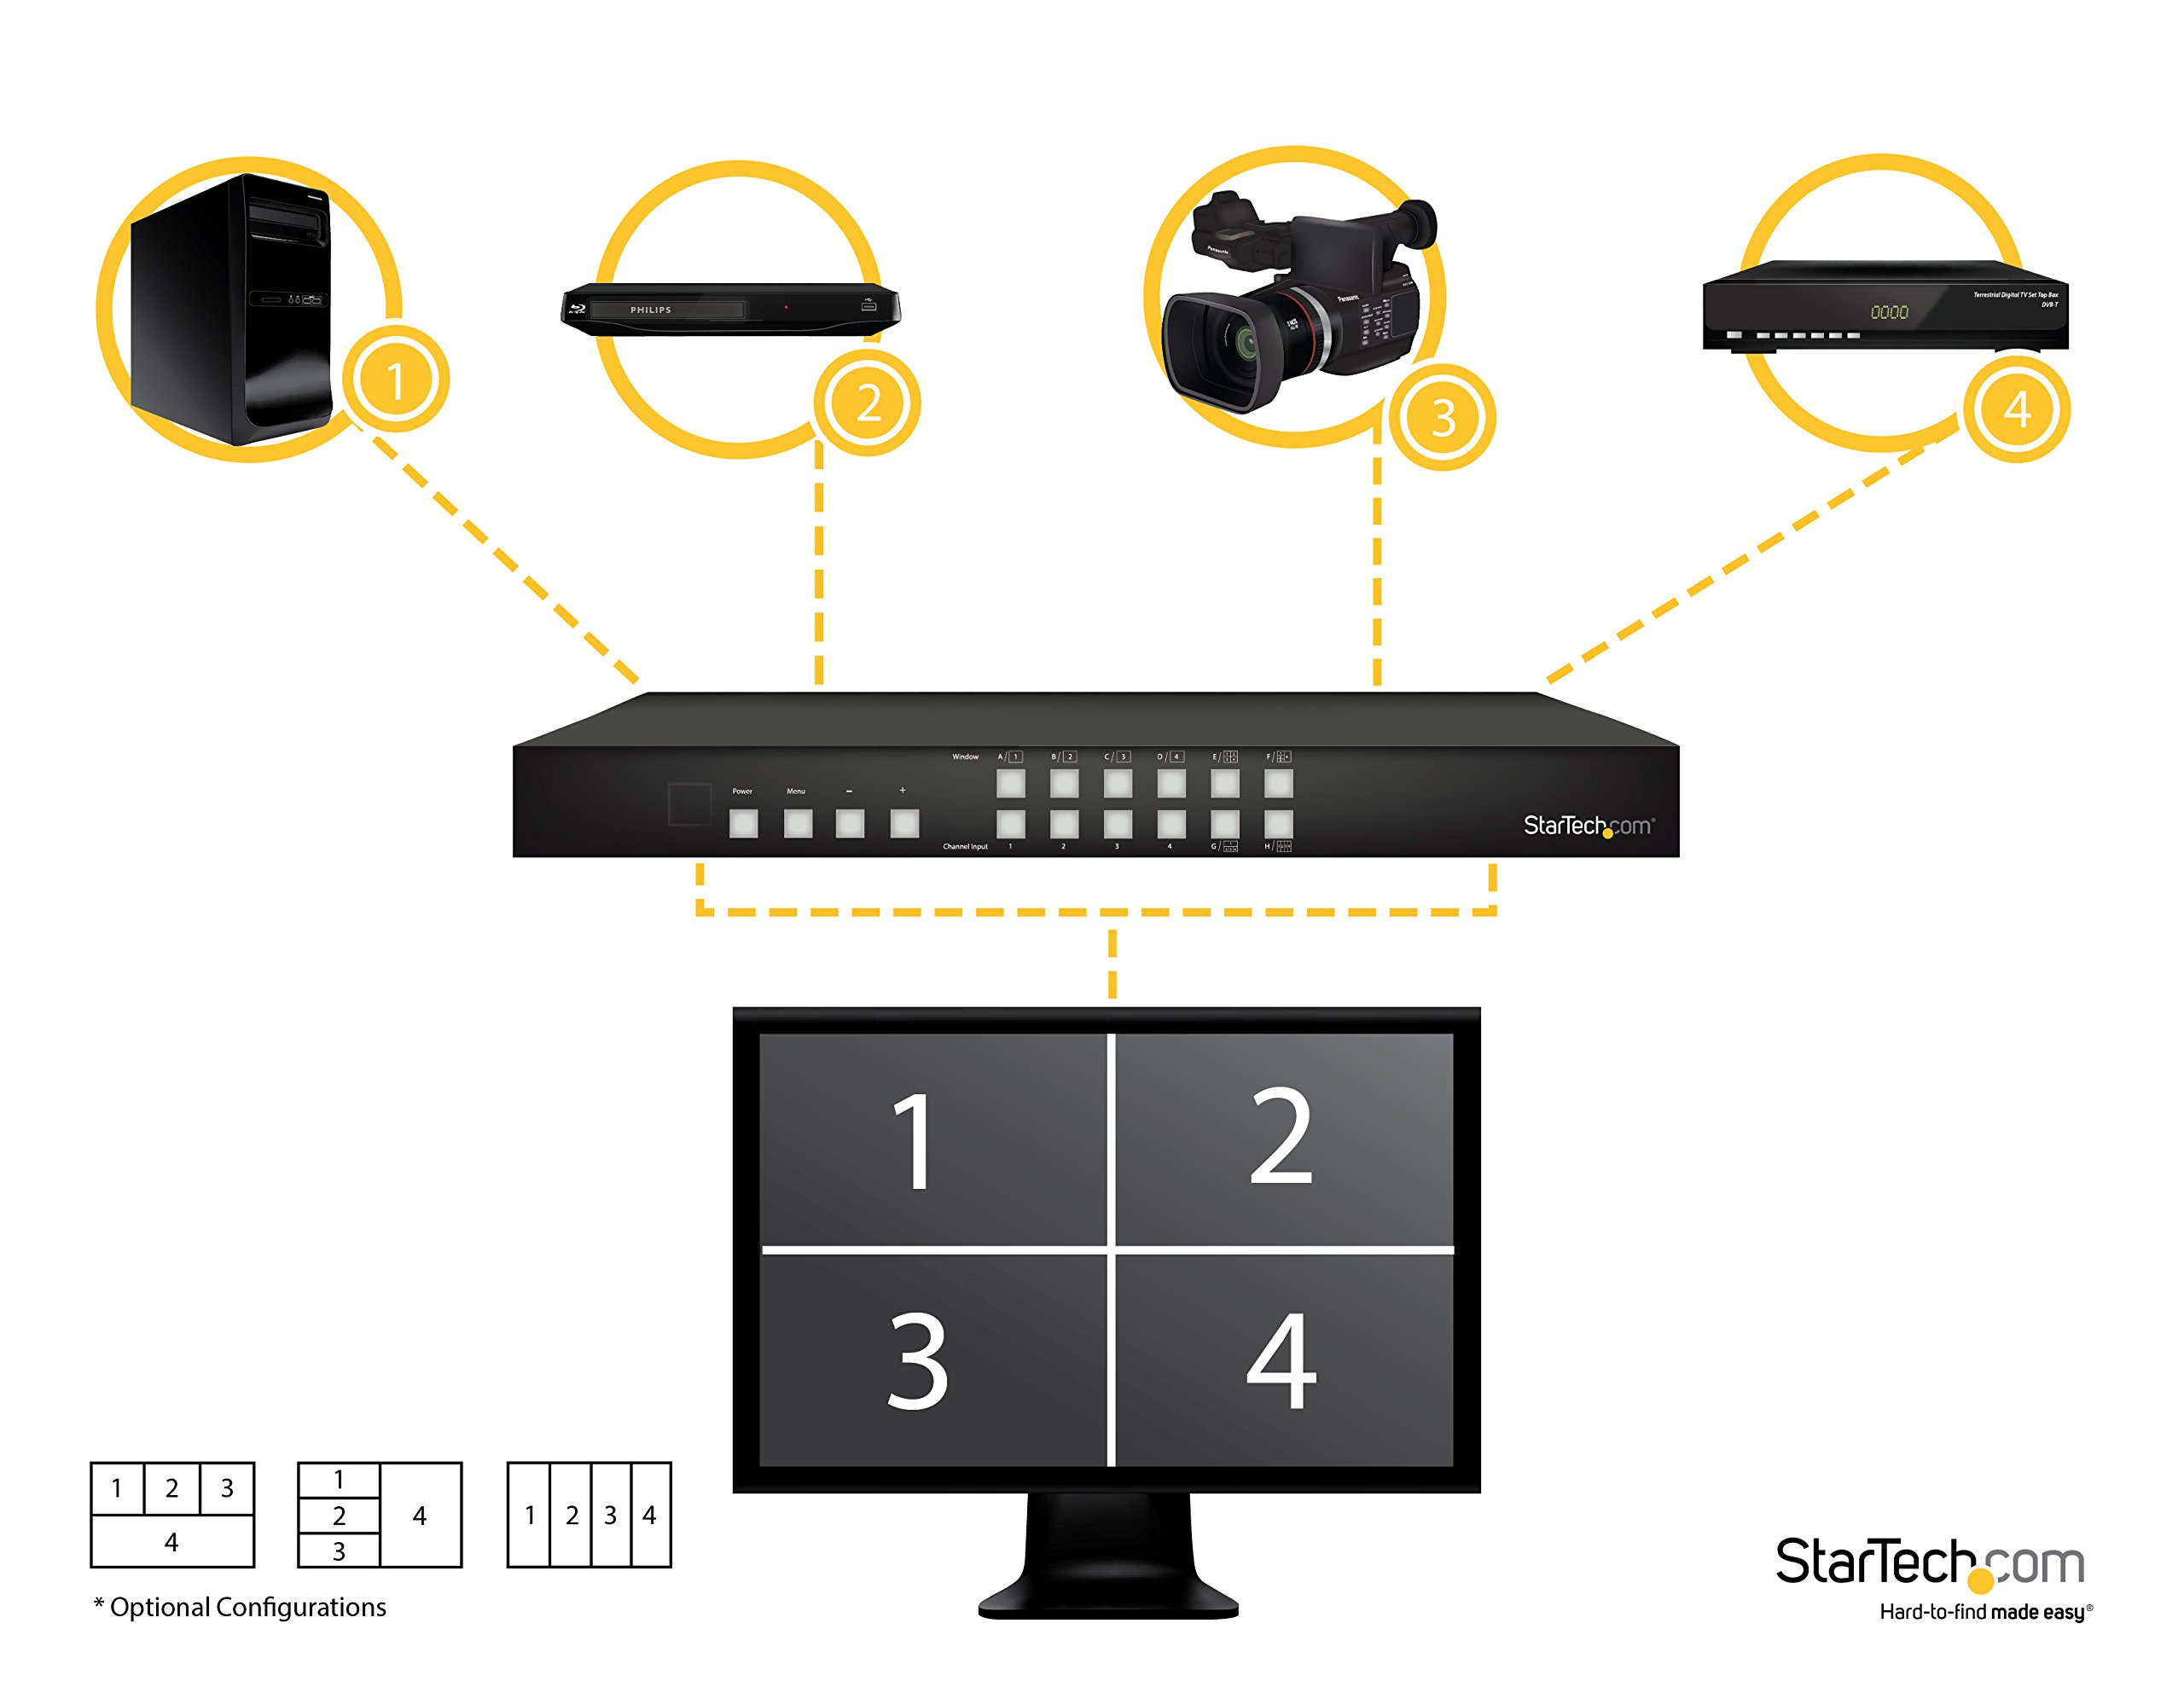 StarTech.com VS421HDPIP 4-Port HDMI Switch with Picture and Picture Multiviewer - 4x1 HDMI Video Switch with PAP Video Combining - 1920x1200 /1080p by StarTech (Image #6)